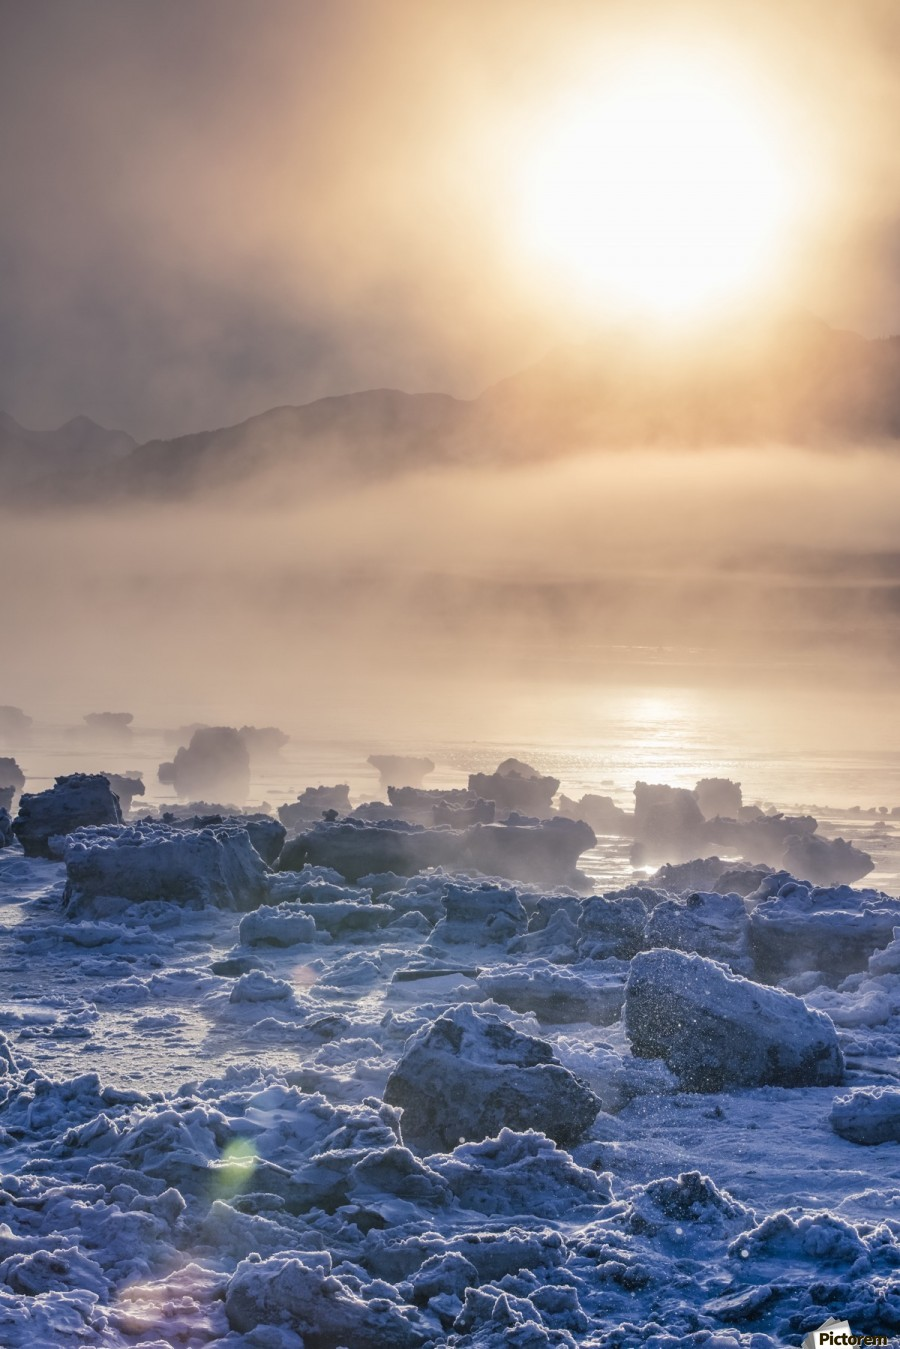 Low altitude fog is cast in warm sunset light along Turnagain Arm and the Seward Highway in winter, sea ice covering the ocean in the foreground, the Chugach Moutains revealed in the background, South-central Alaska; Alaska, United States of America  Print